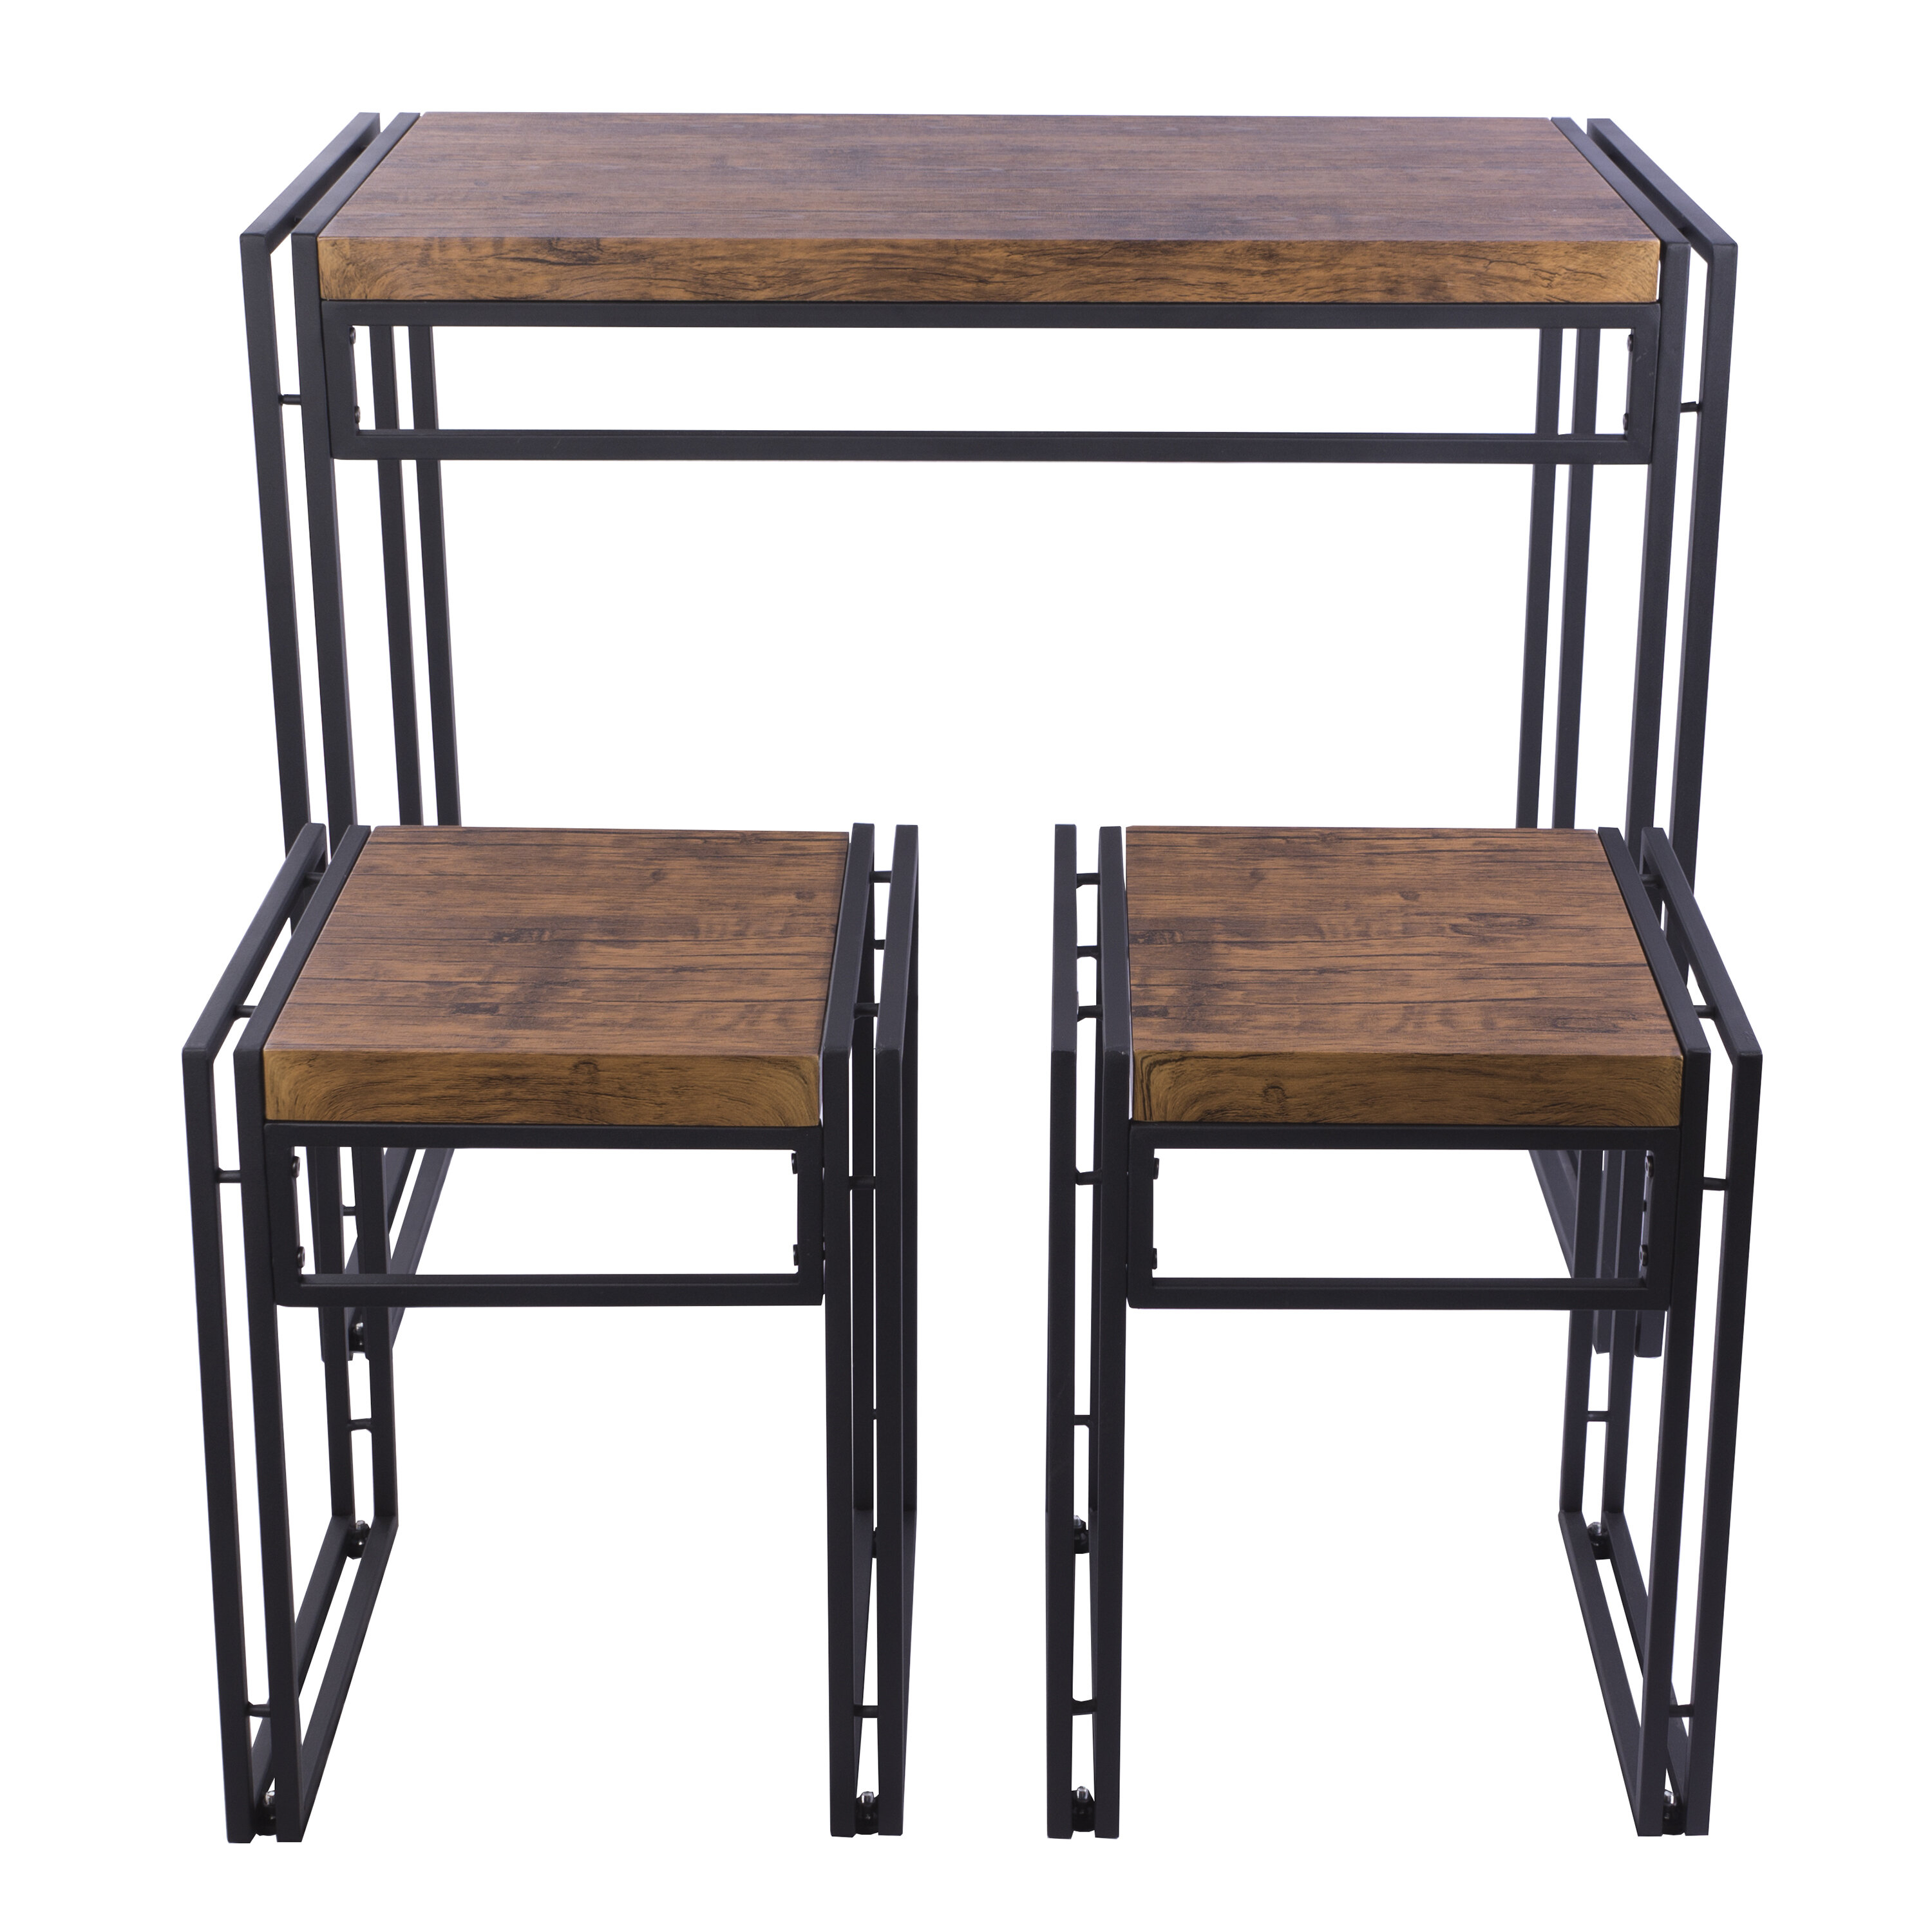 Debby Small Space 3 Piece Dining Set (View 20 of 20)